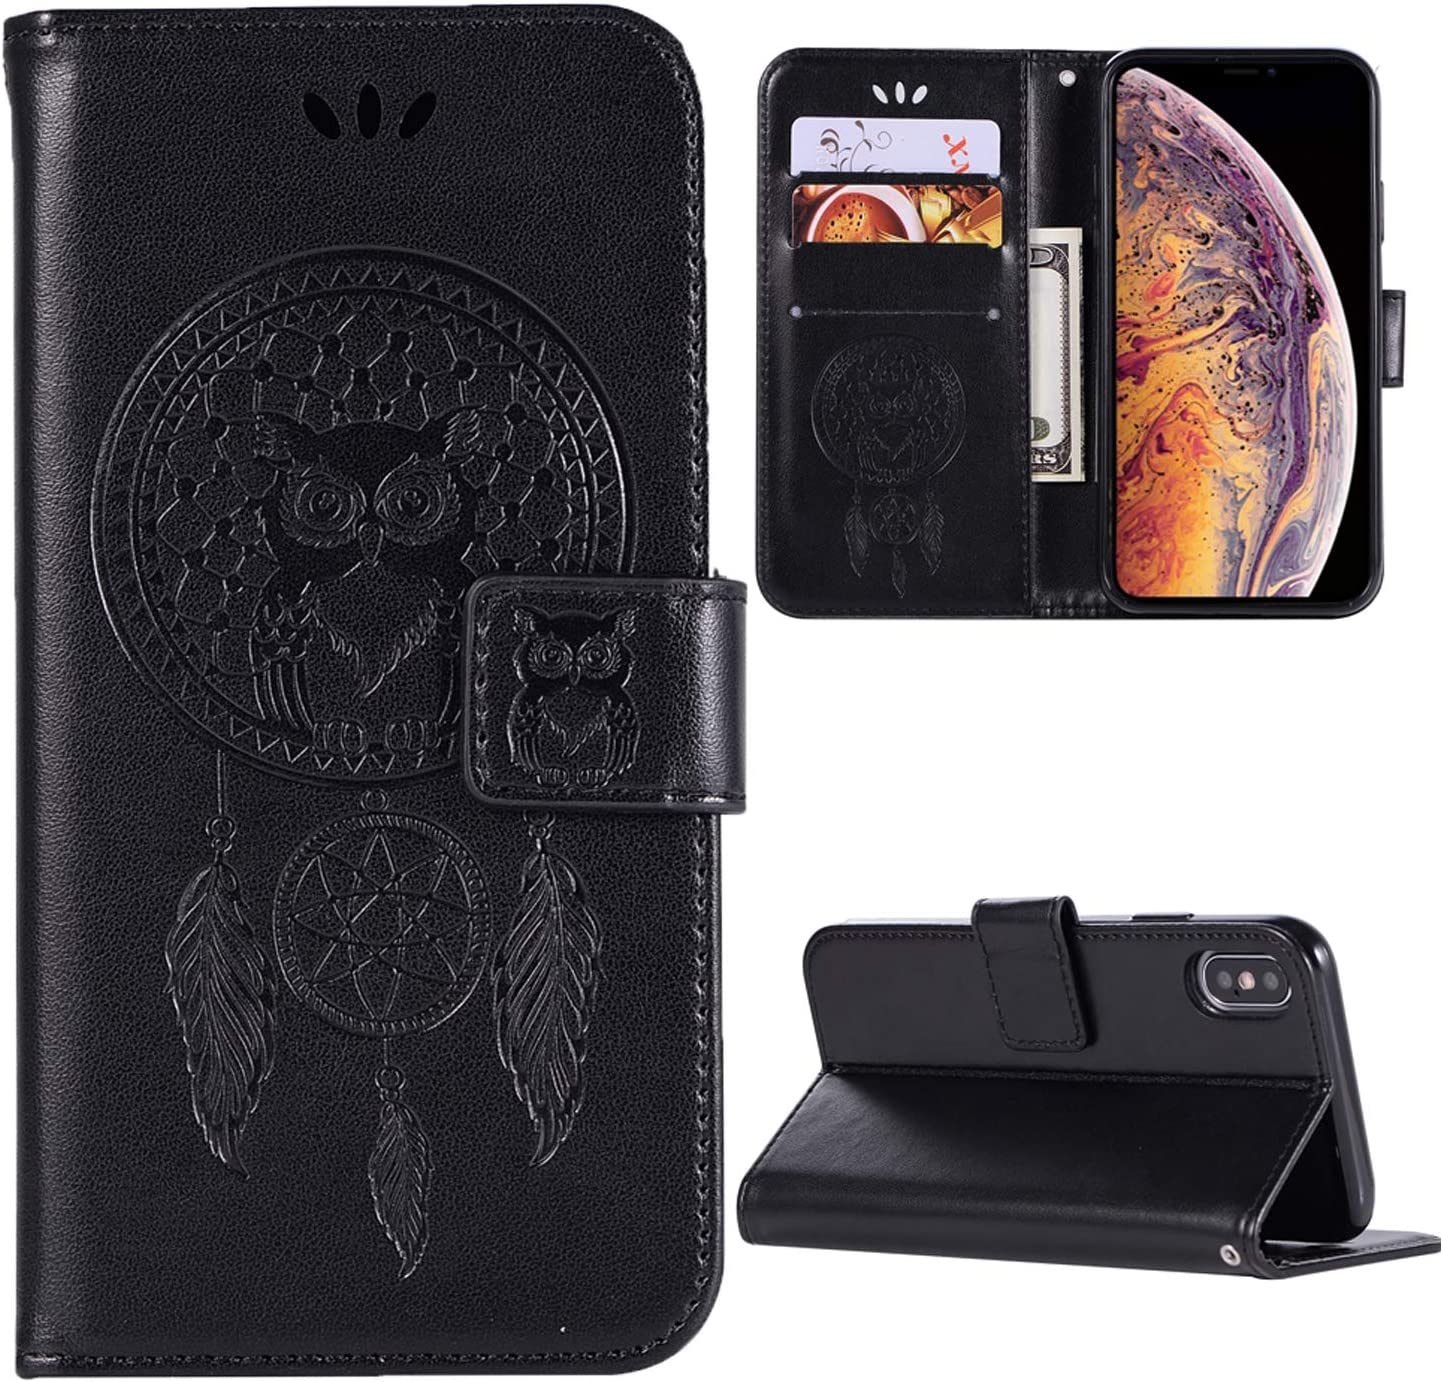 iPhone XS MAX Case,iPhone XS MAX Phone Case,iPhone XS MAX Wallet Case,PU Leather Flip Case with Credit Card Holder and Kickstand Owl Dreamcatcher Phone Cover for iPhone XS MAX (6.5 inch),Purple